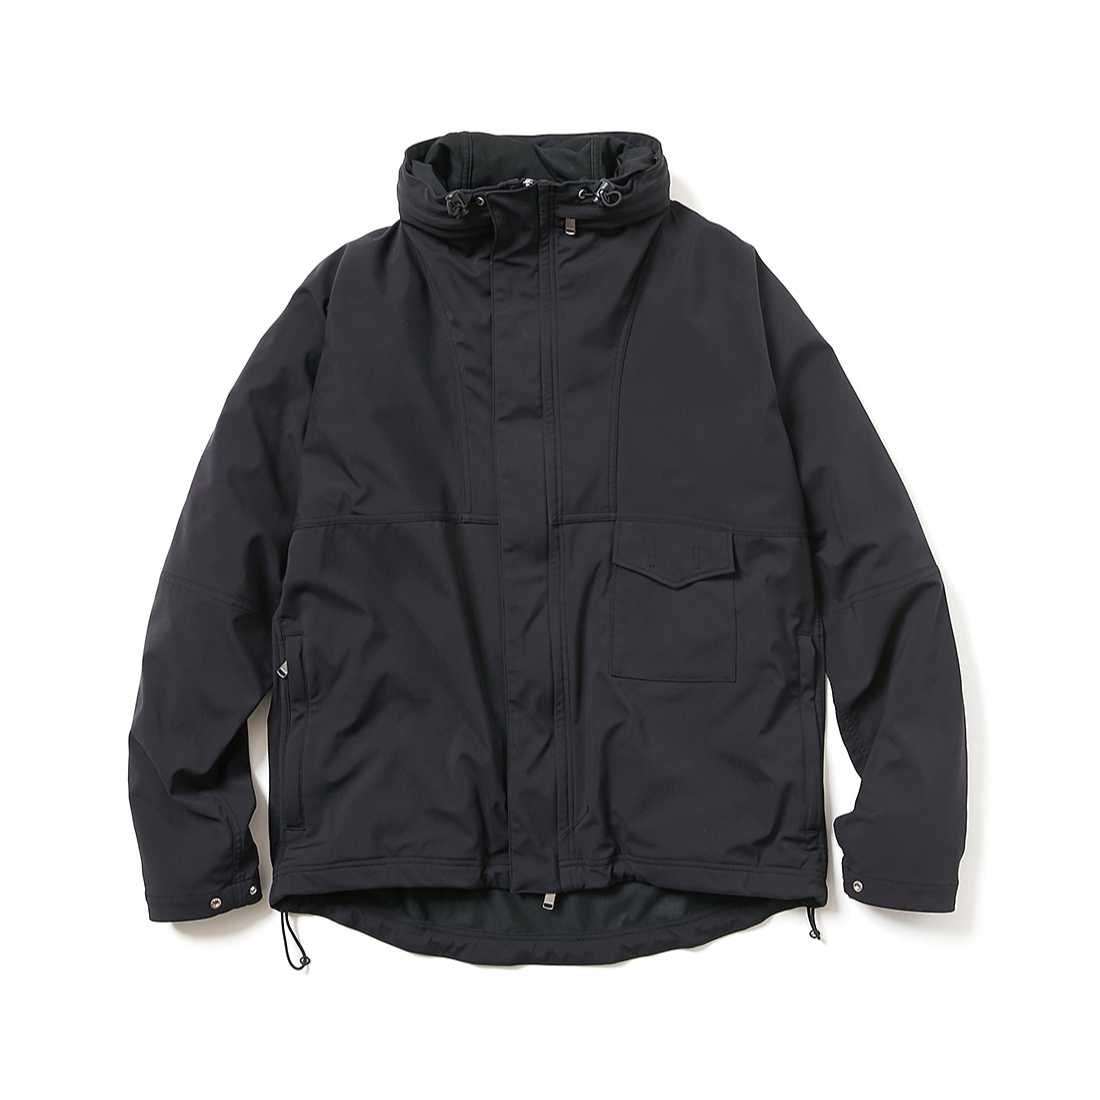 nonnative / CYCLIST JACKET N/P TAFFETA STRETCH WITH WINDSTOPPER 3L -BLACK